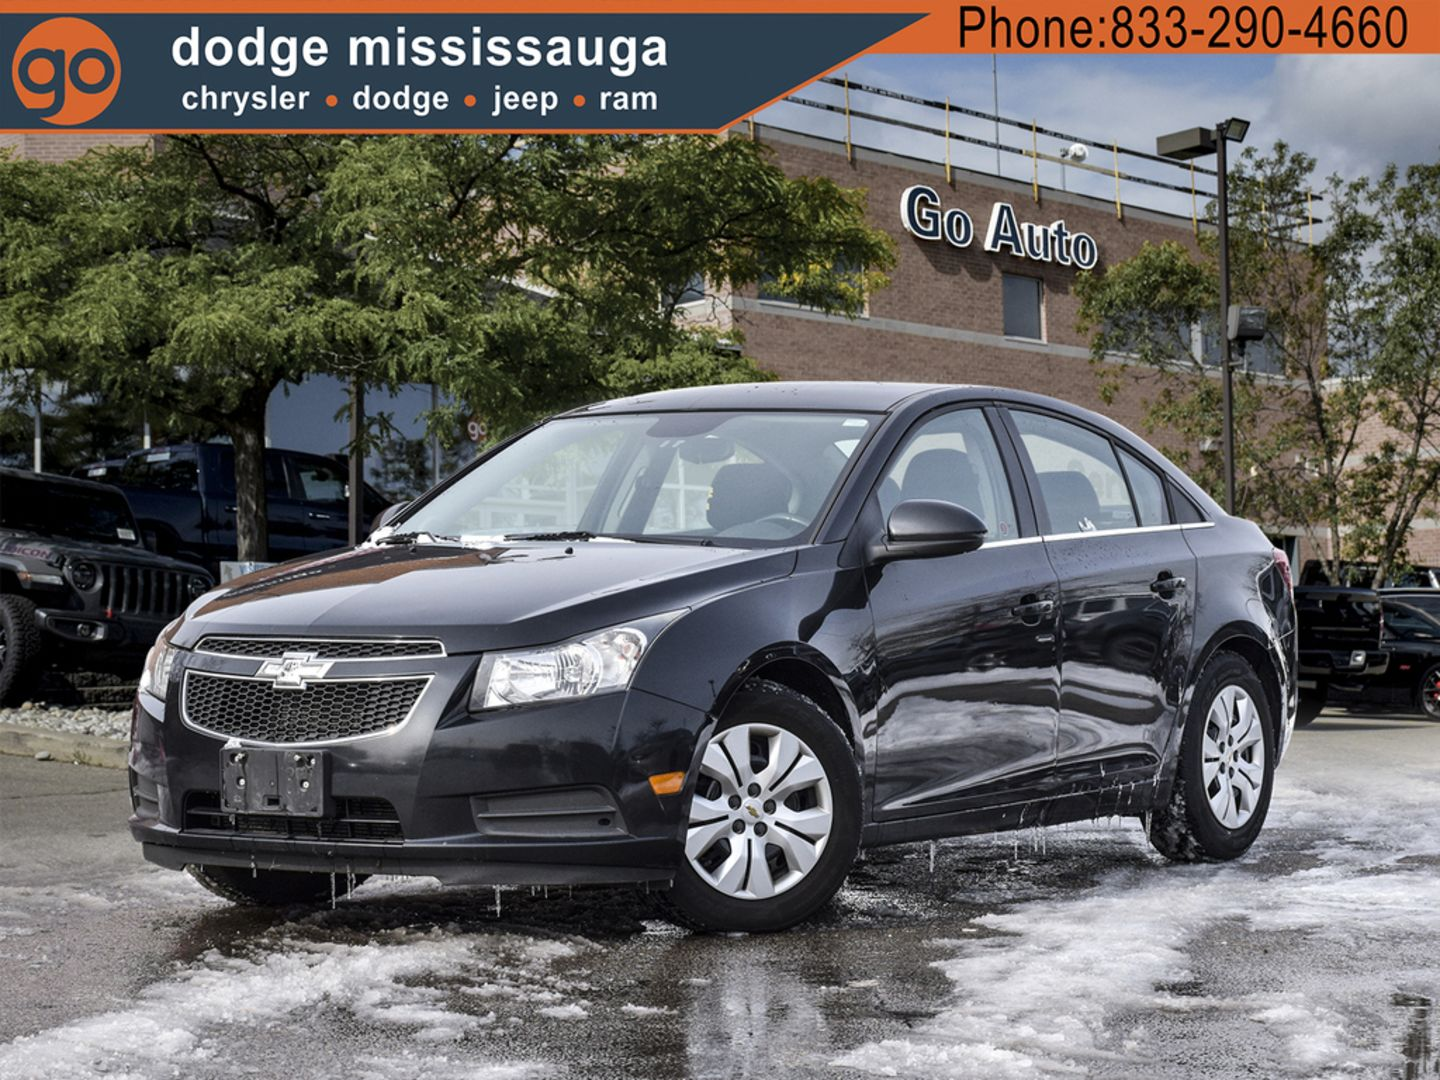 2013 Chevrolet Cruze LT Turbo for sale in Mississauga, Ontario